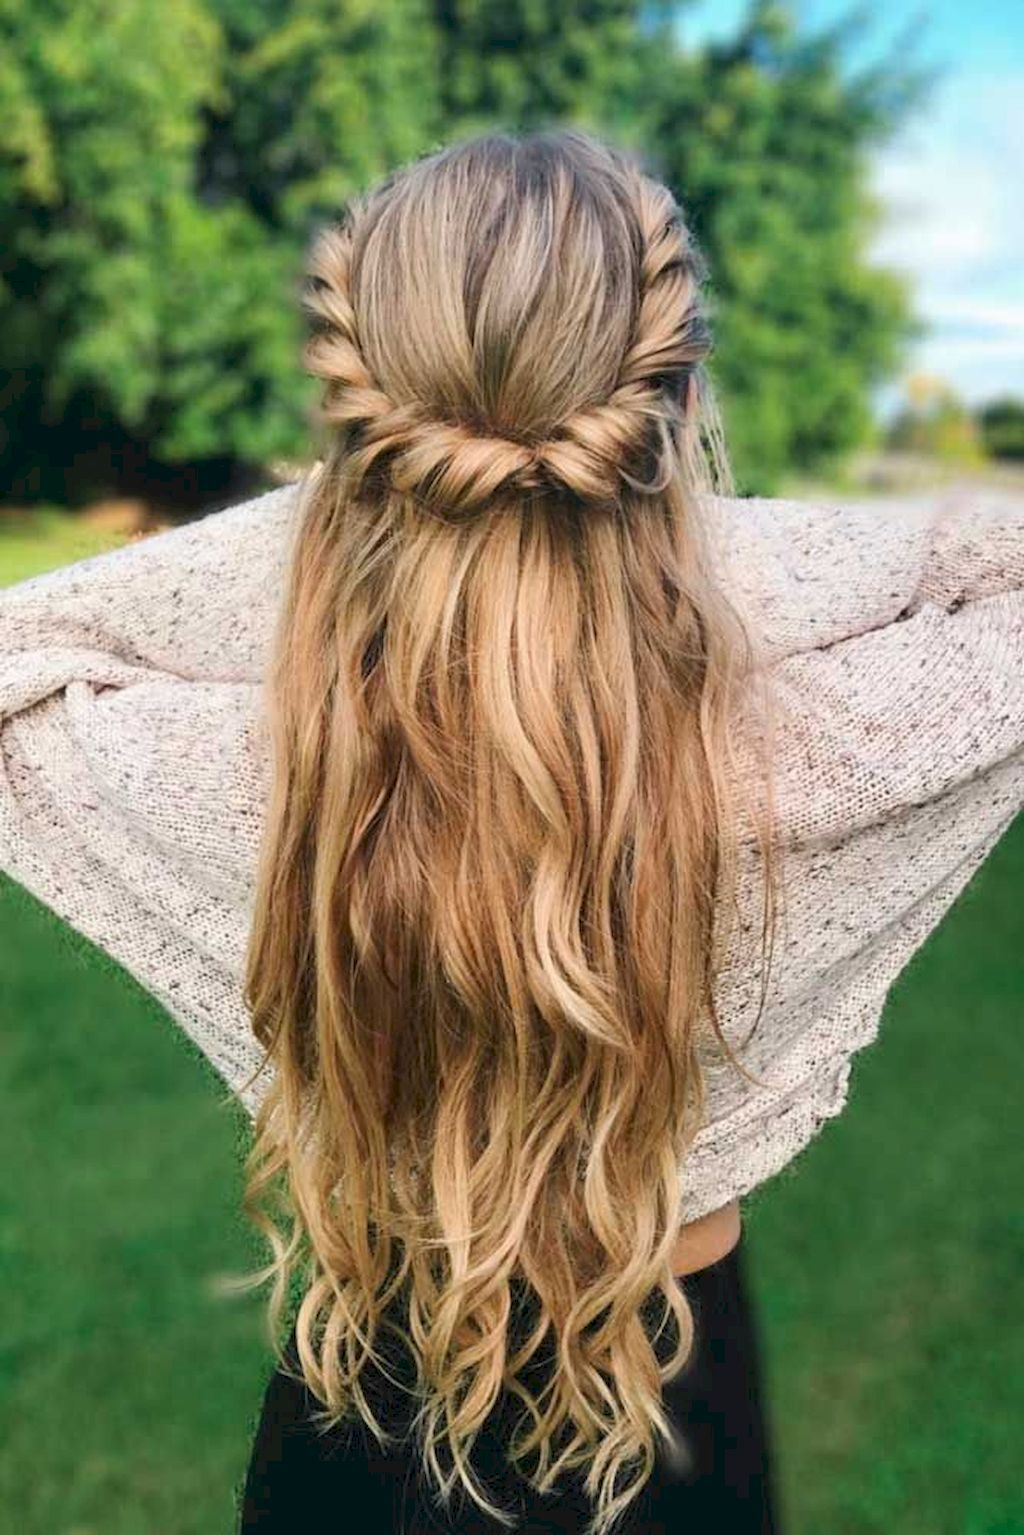 40 Easy Summer Hairstyle Ideas To Do Yourself Hairstyles